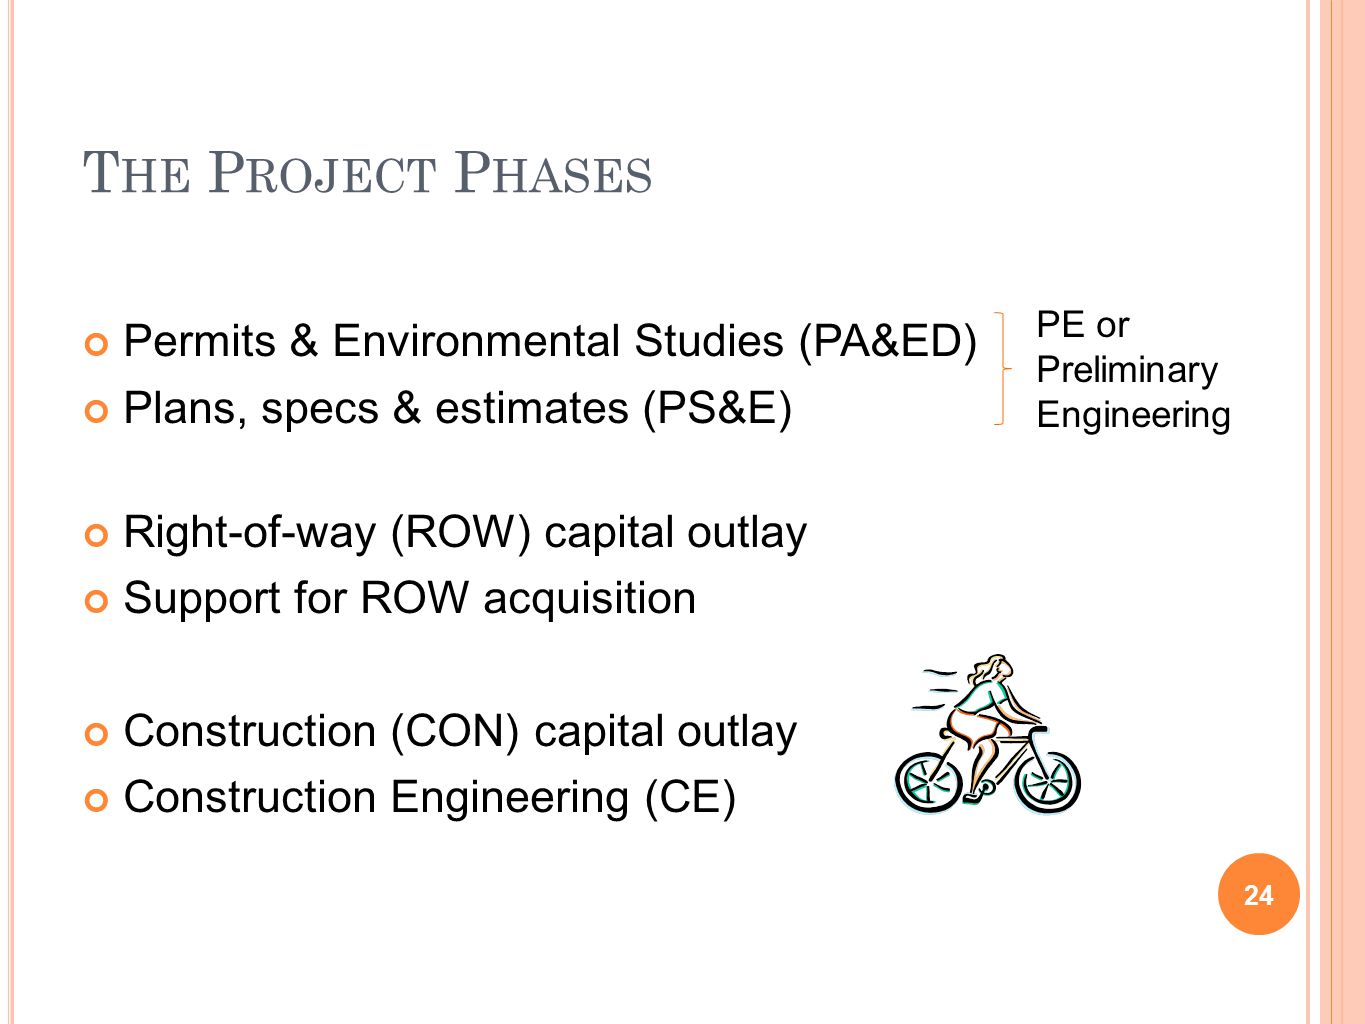 T HE P ROJECT P HASES Permits & Environmental Studies (PA&ED) Plans, specs & estimates (PS&E) Right-of-way (ROW) capital outlay Support for ROW acquisition Construction (CON) capital outlay Construction Engineering (CE) PE or Preliminary Engineering 24